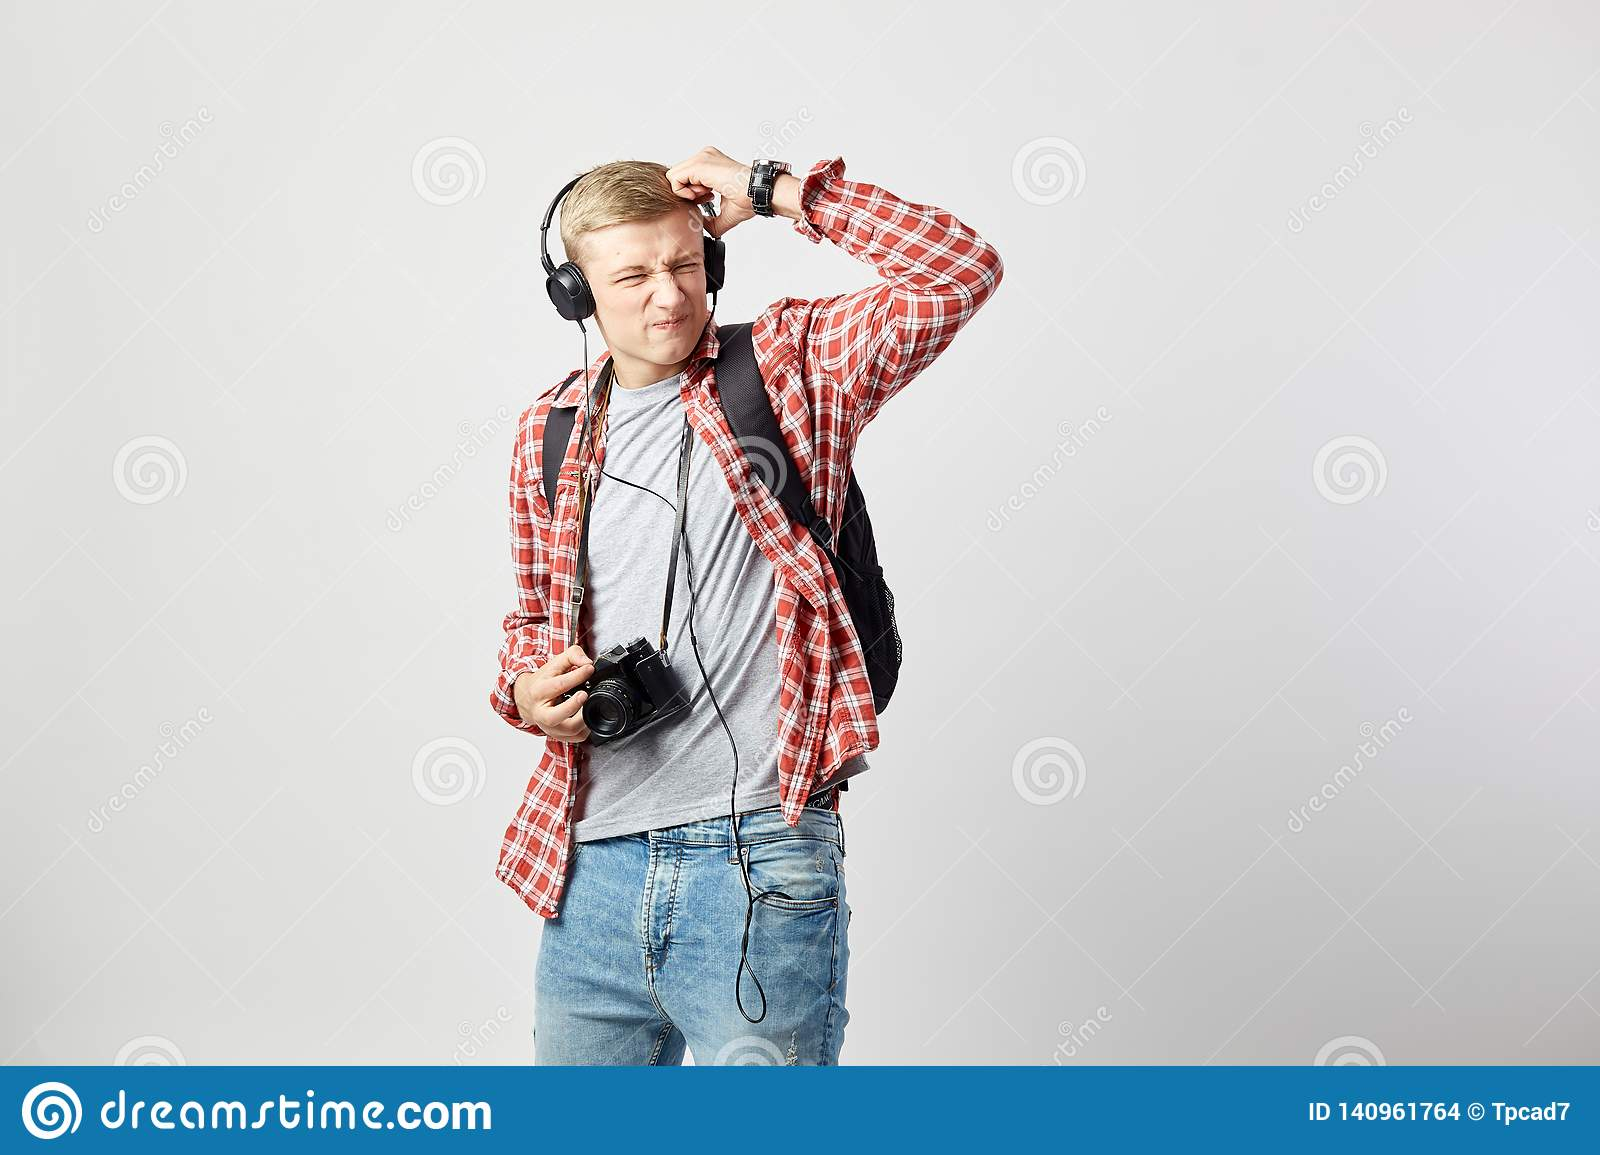 Blond guy in headphones, with black backpack on his shoulder dressed in a white t-shirt, red checkered shirt and jeans